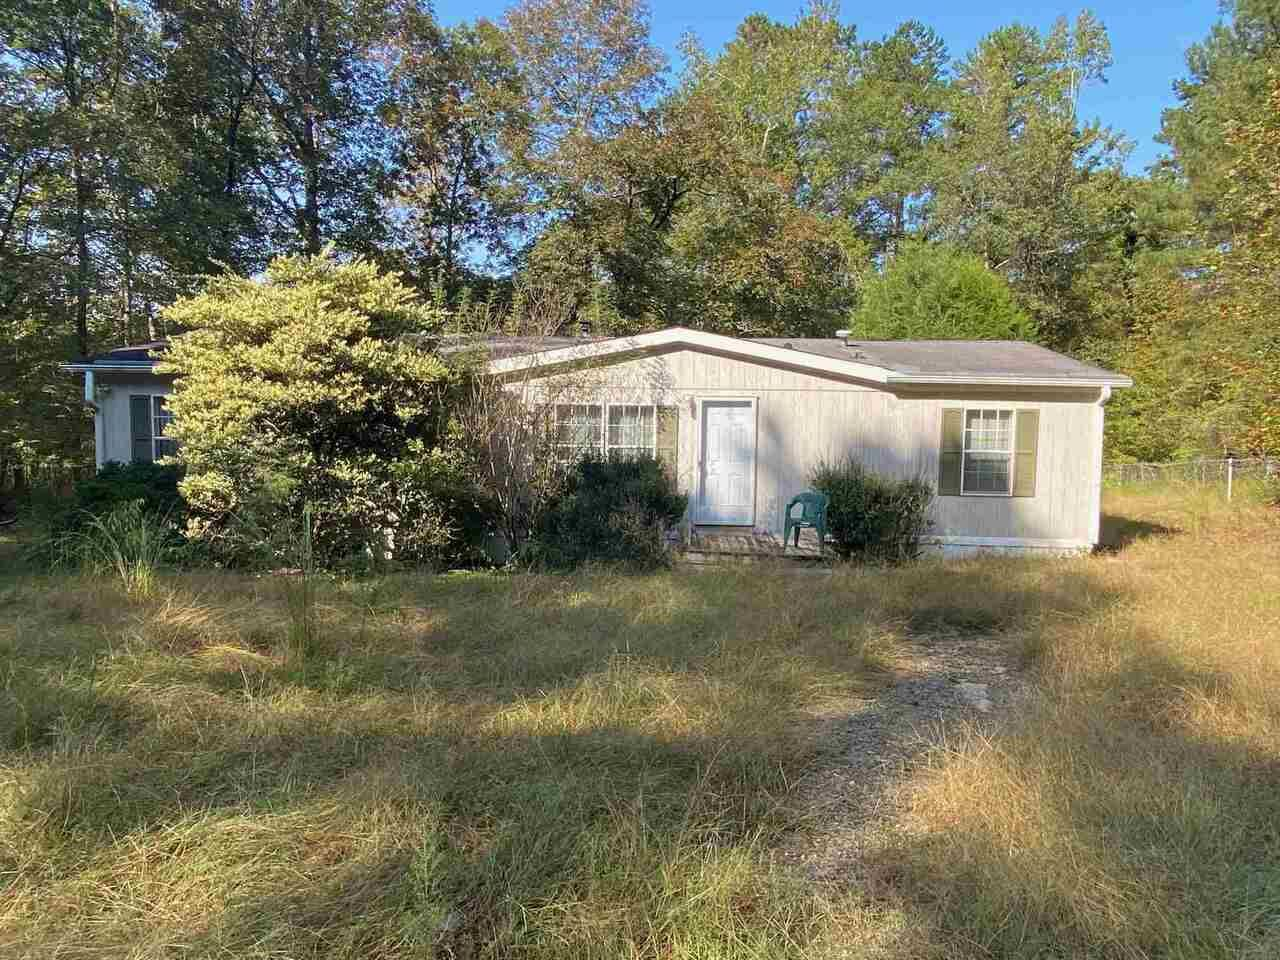 164 Rockville Springs Dr, Eatonton, GA 31024 - MLS#: 8873900